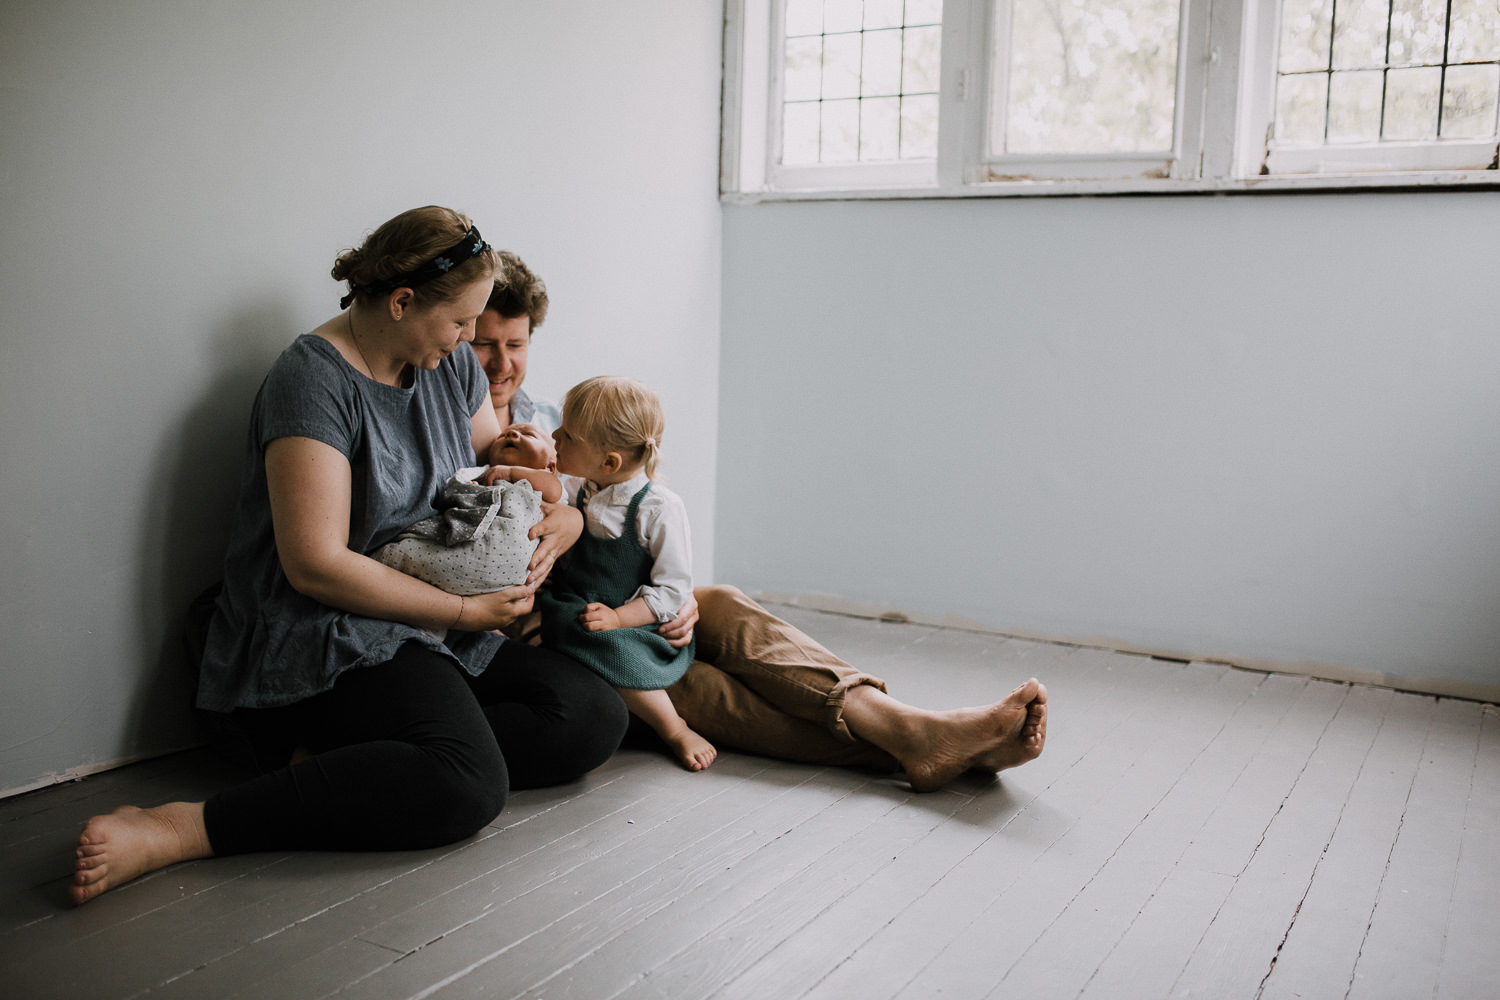 family of four sitting on floor, toddler sister looking at baby brother in mom's arms - Newmarket Lifestyle Family Photography